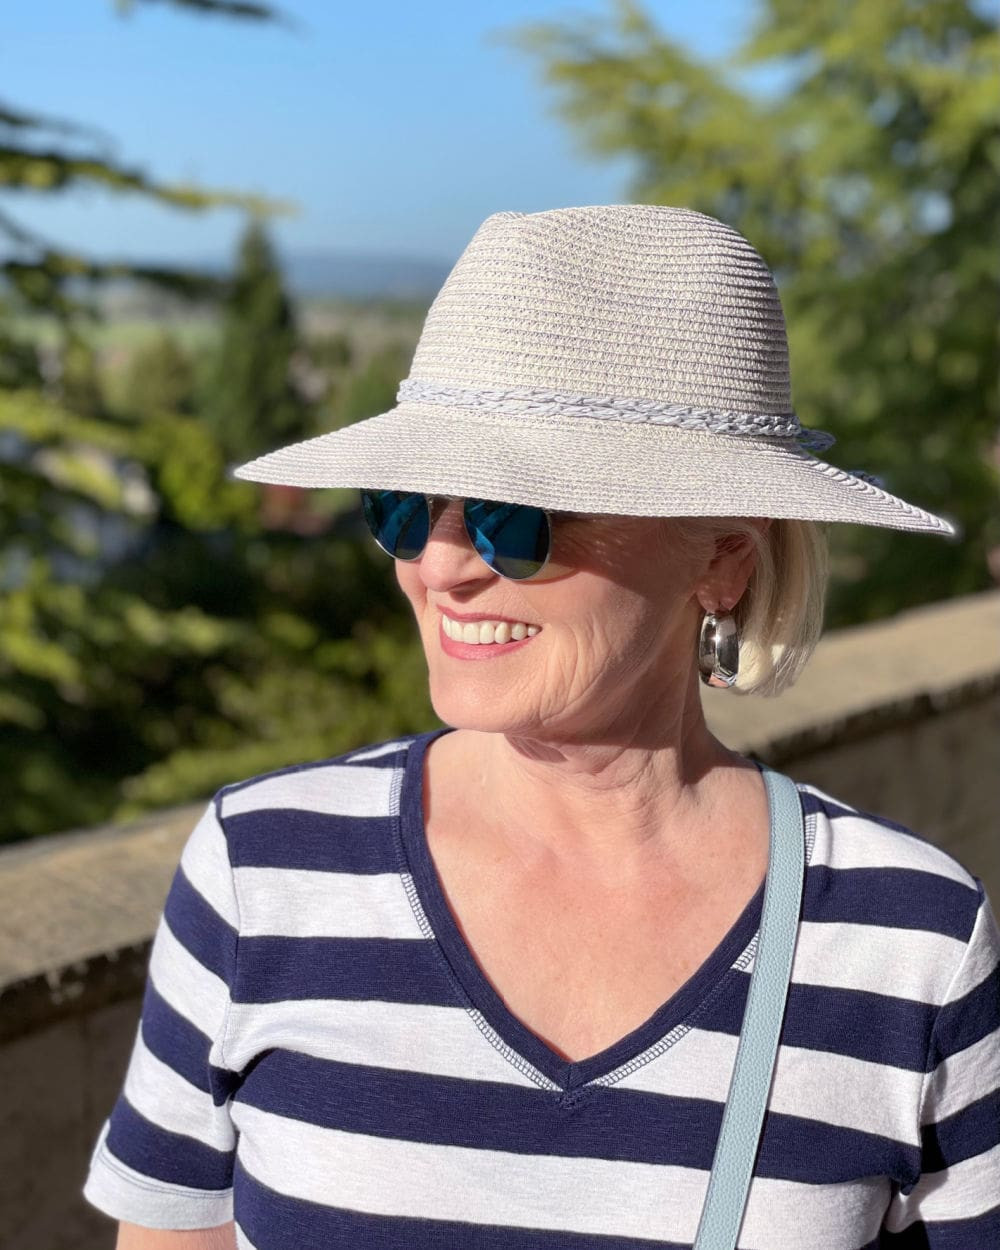 woman wearing straw hat and striped dress with sunglasses